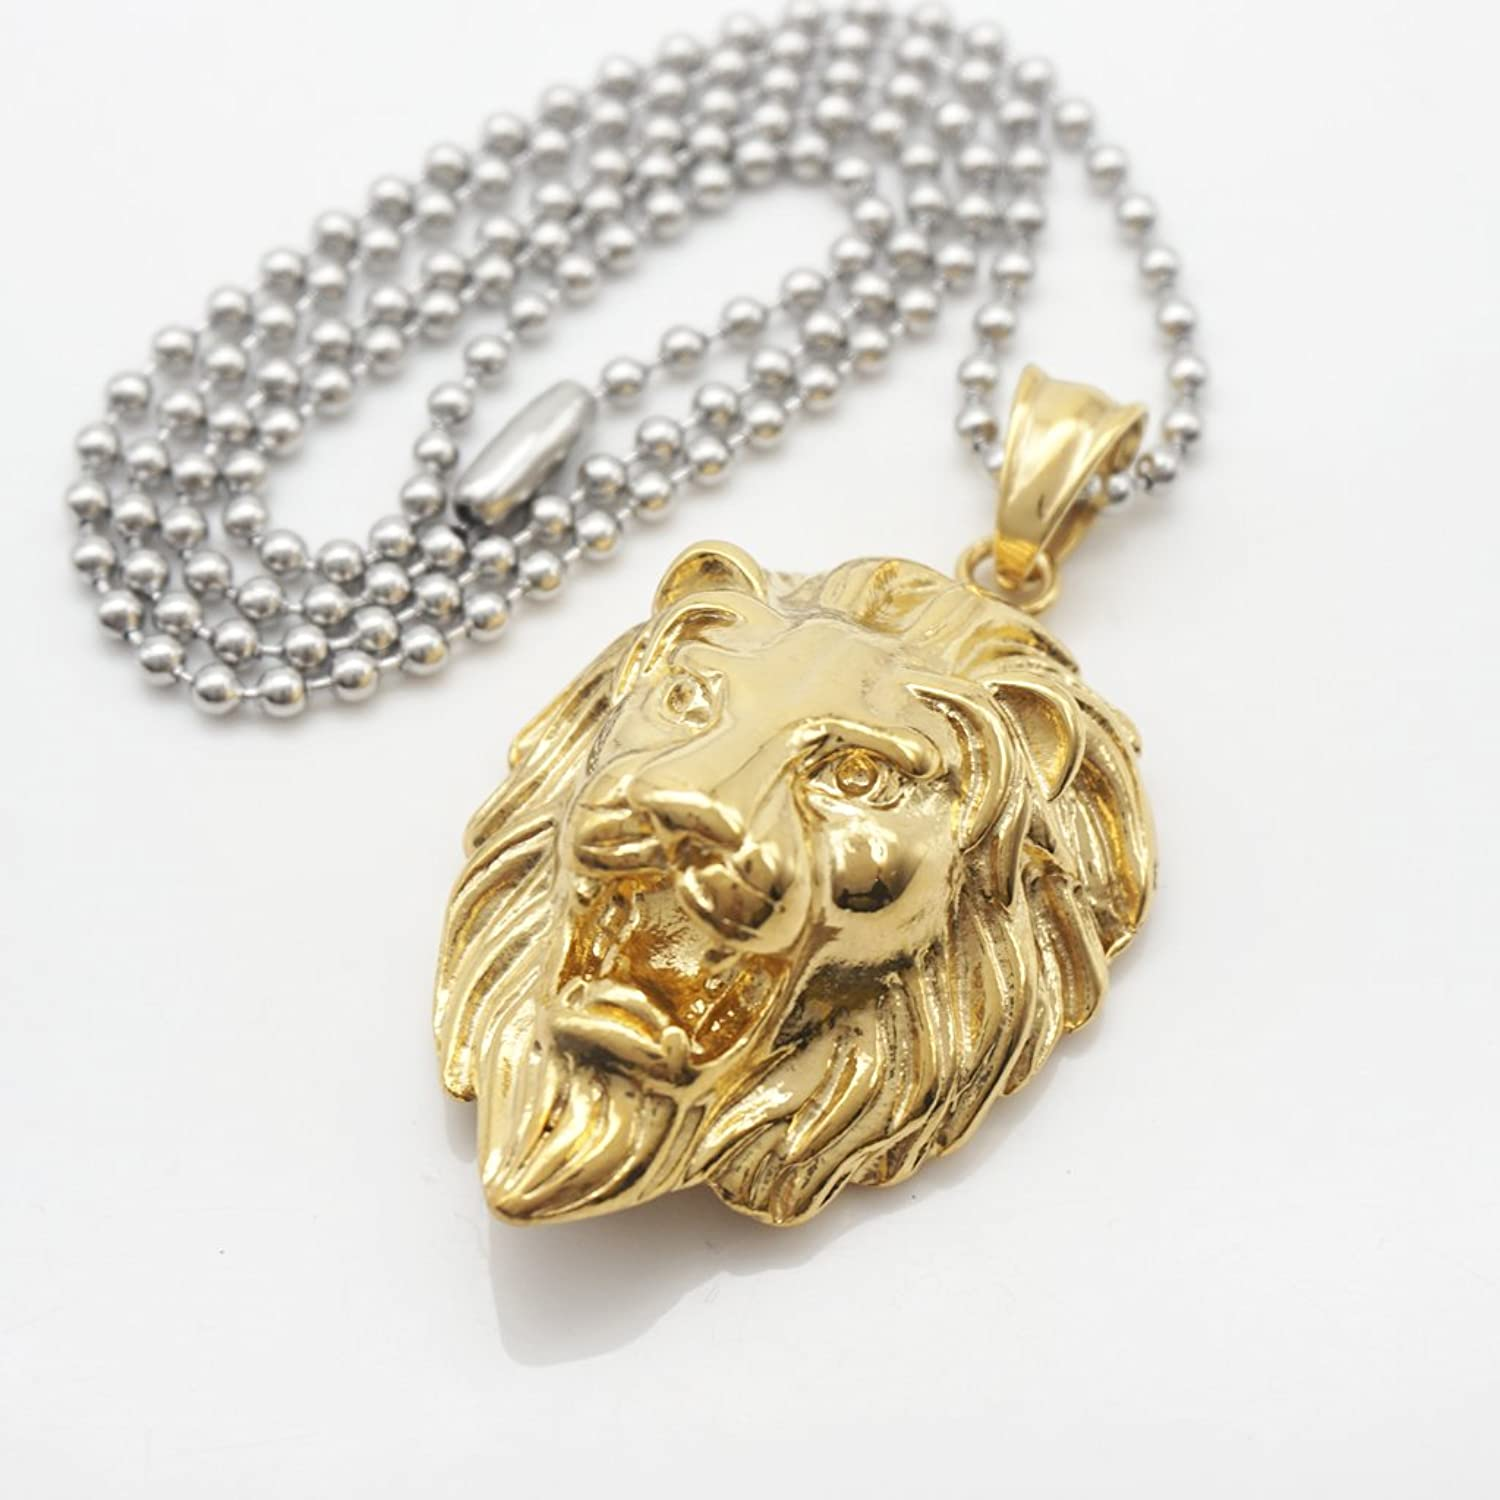 hop hip chain lion gold men s itm head pendant animal jewellry necklace mens